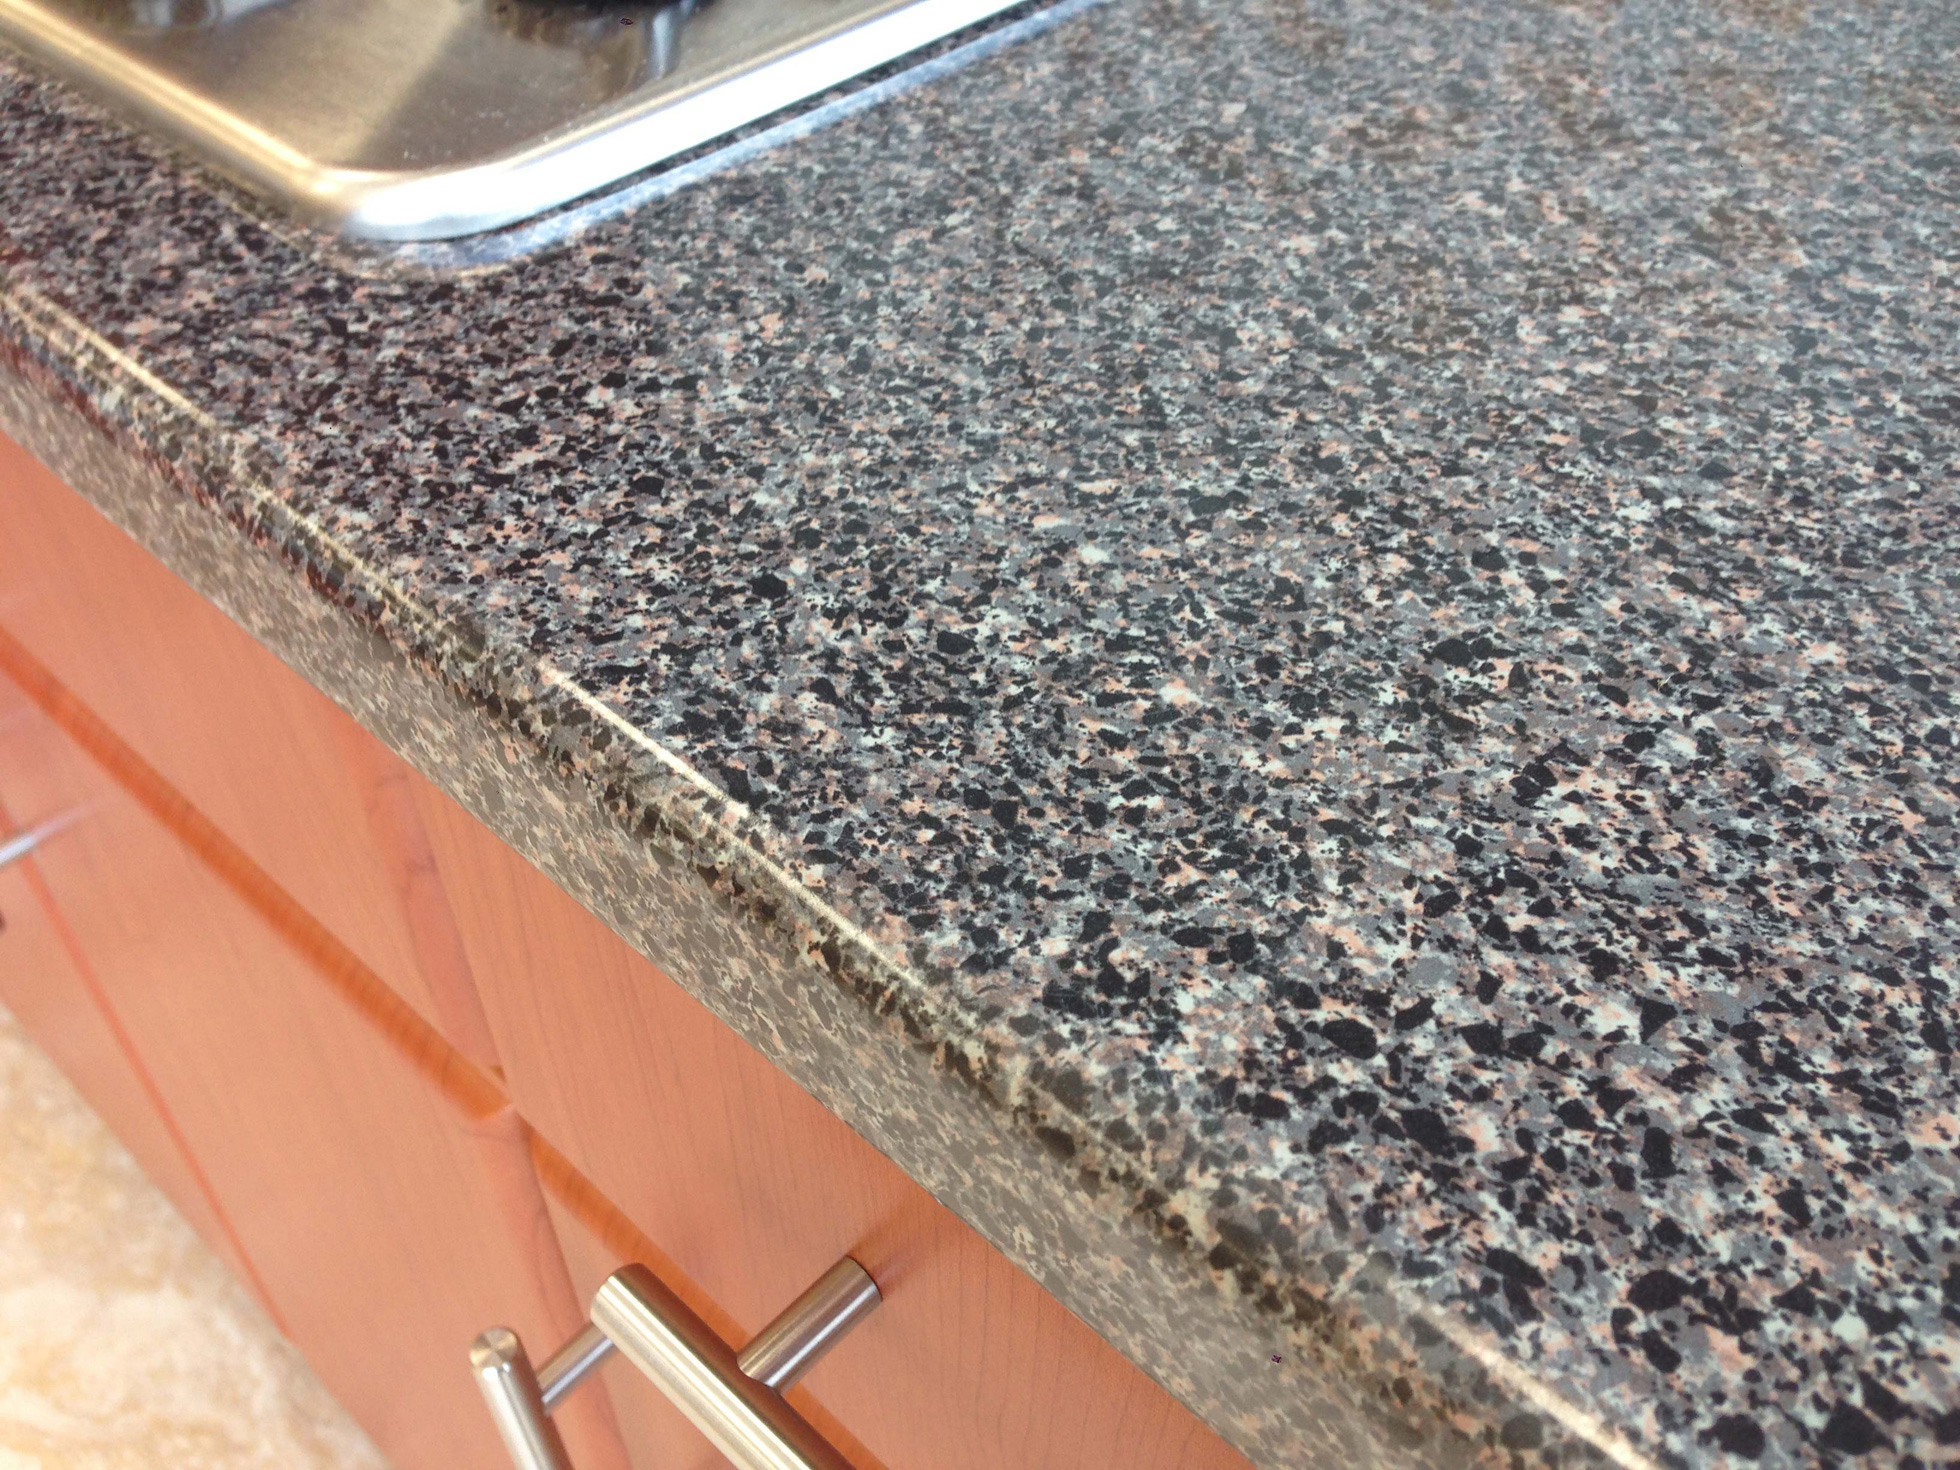 Granite-look laminate kitchen counter